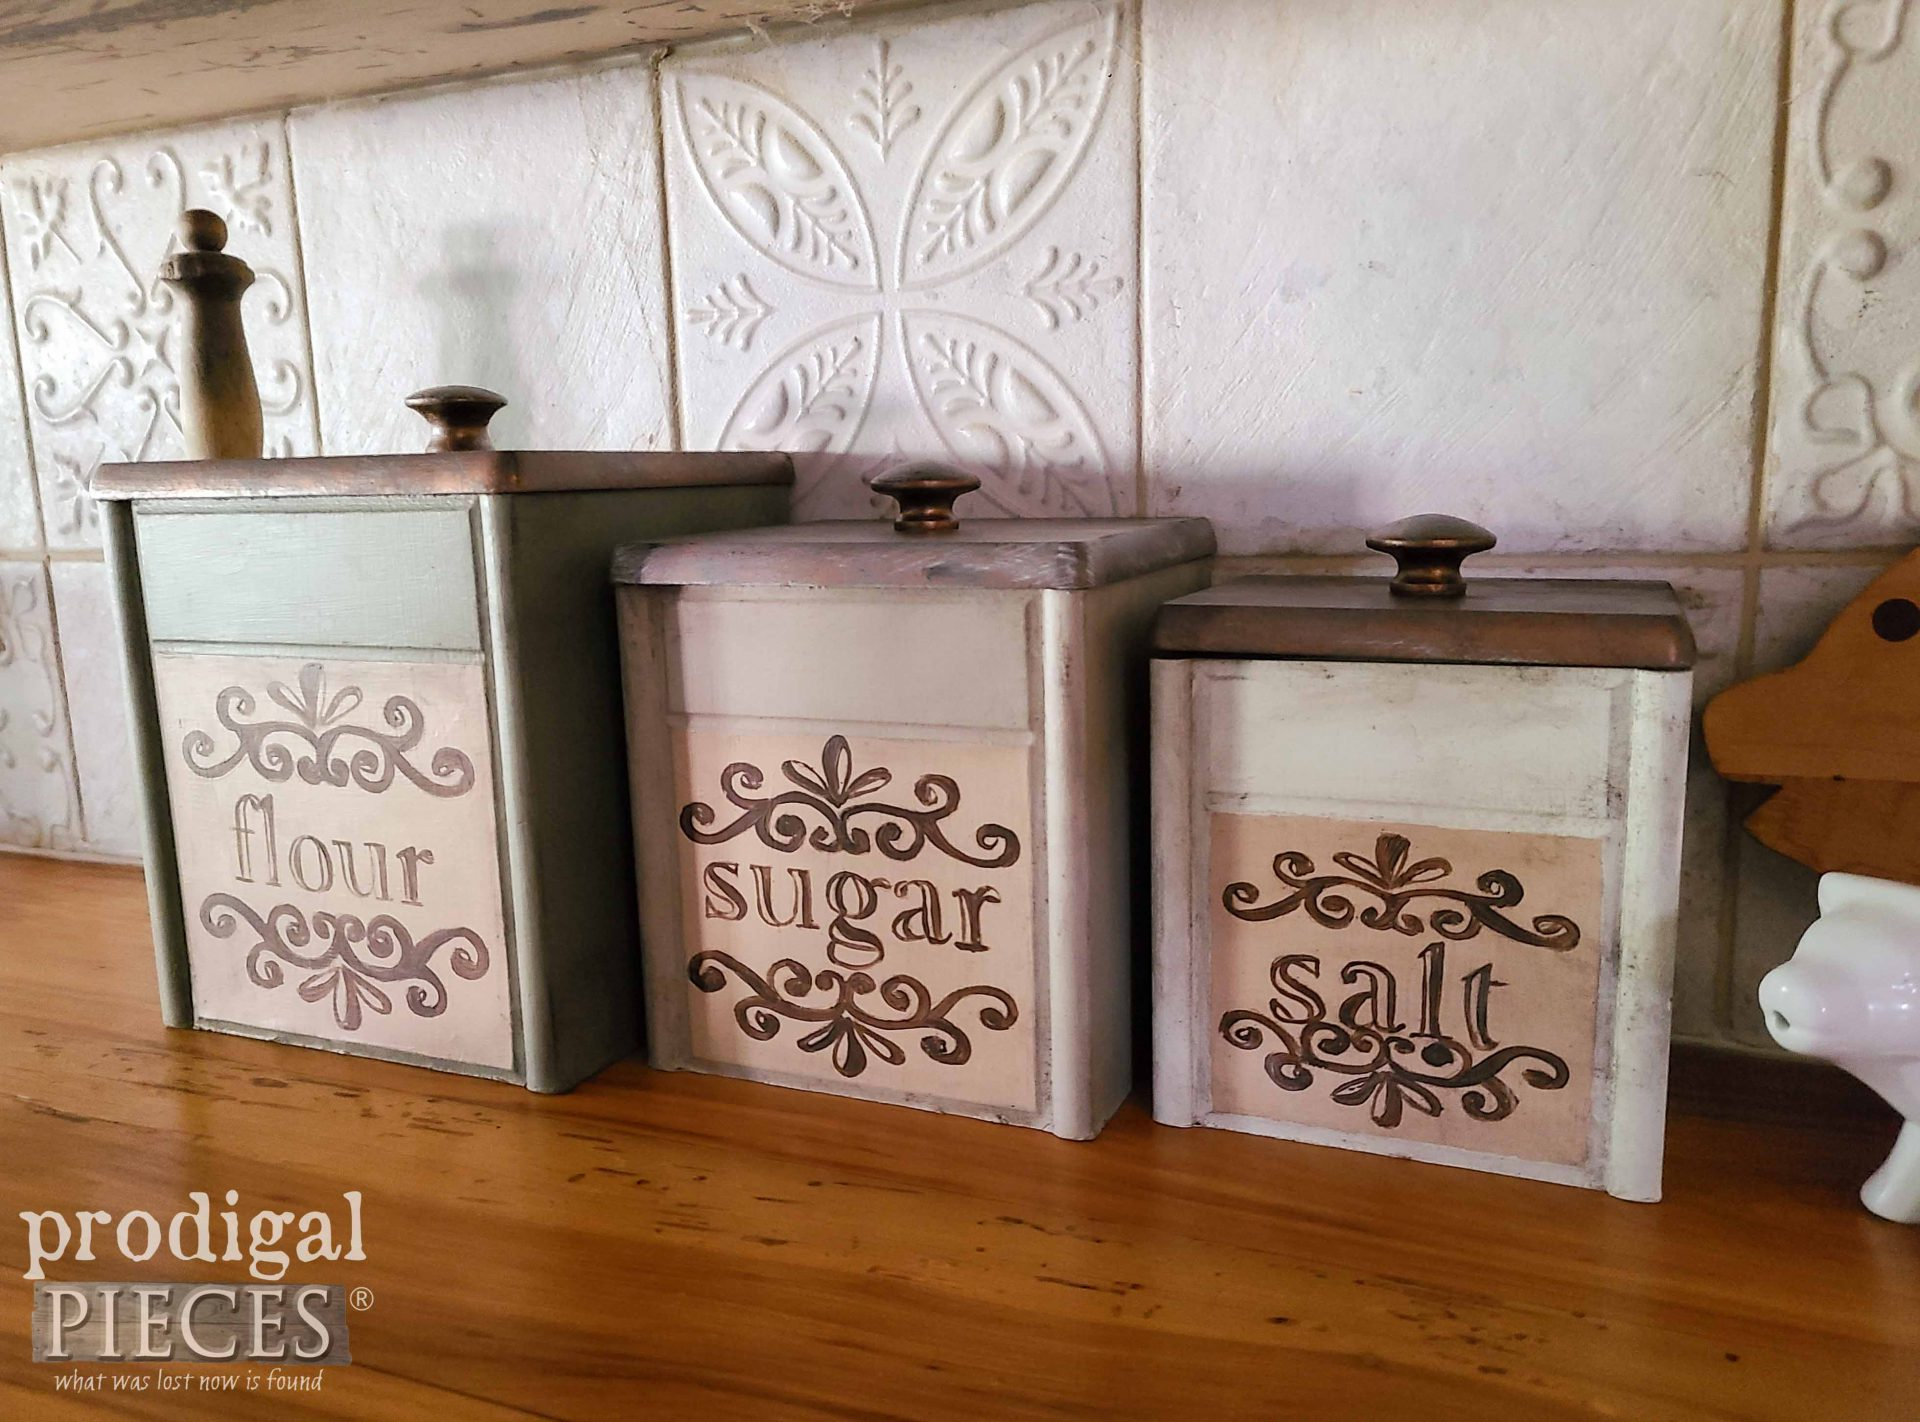 Thrifted Kitchen Canisters with Typography by Larissa of Prodigal Pieces | prodigalpieces.com #prodigalpieces #farmhouse #kitchen #home #diy #homedecor